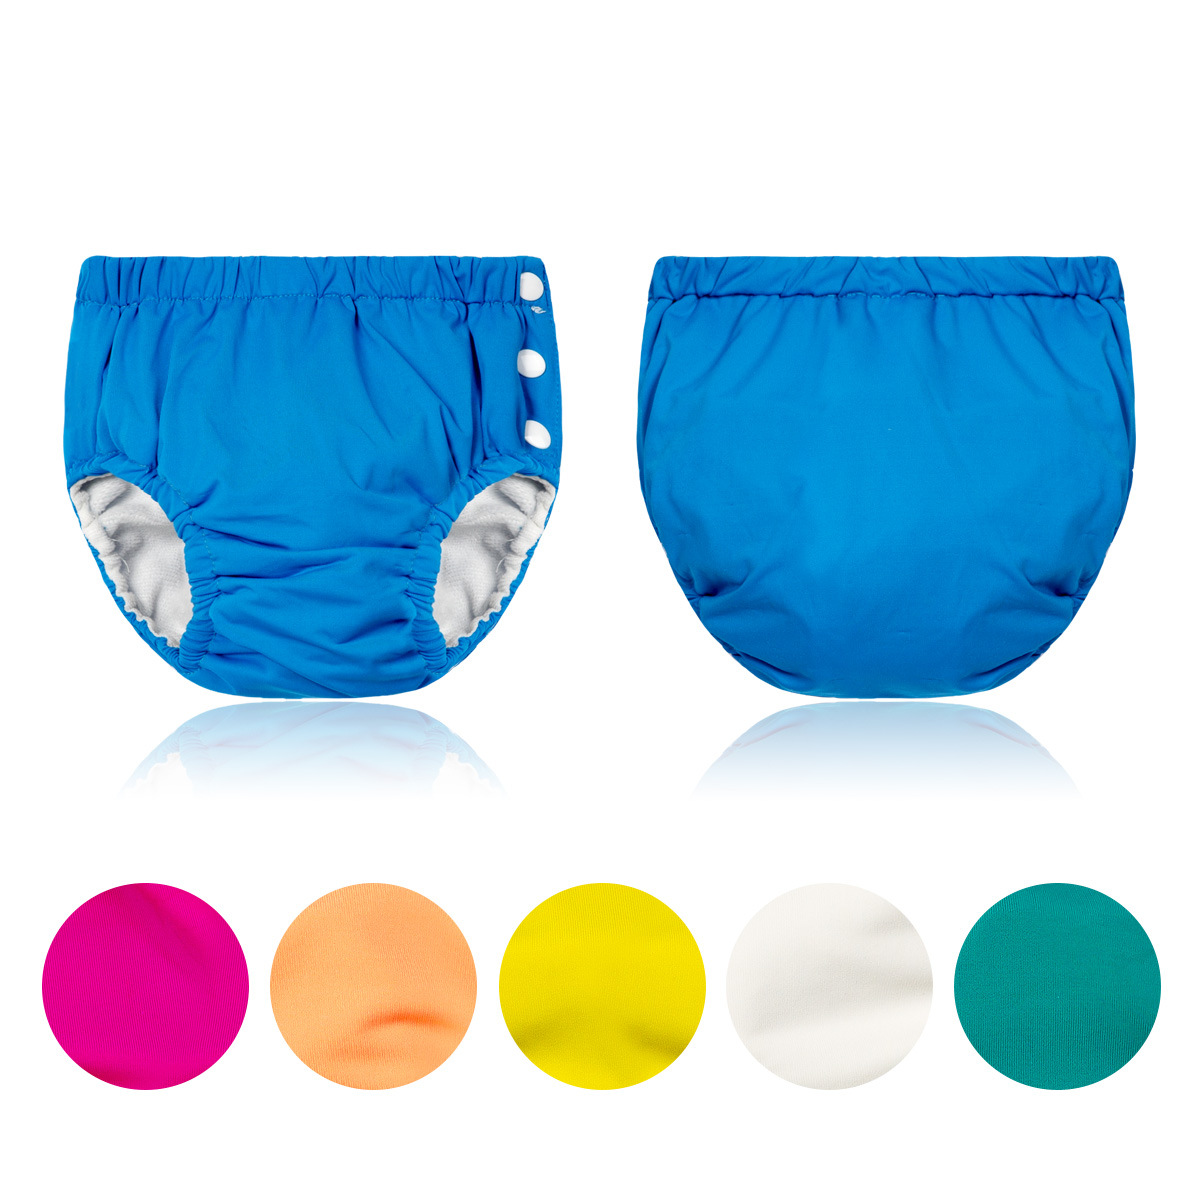 New Style Side Buckle-Baby Washable Pocket Urine Learn Swimming Trunks BABY'S Swimming Trunks Infant Swimming Pool Diaper Pants